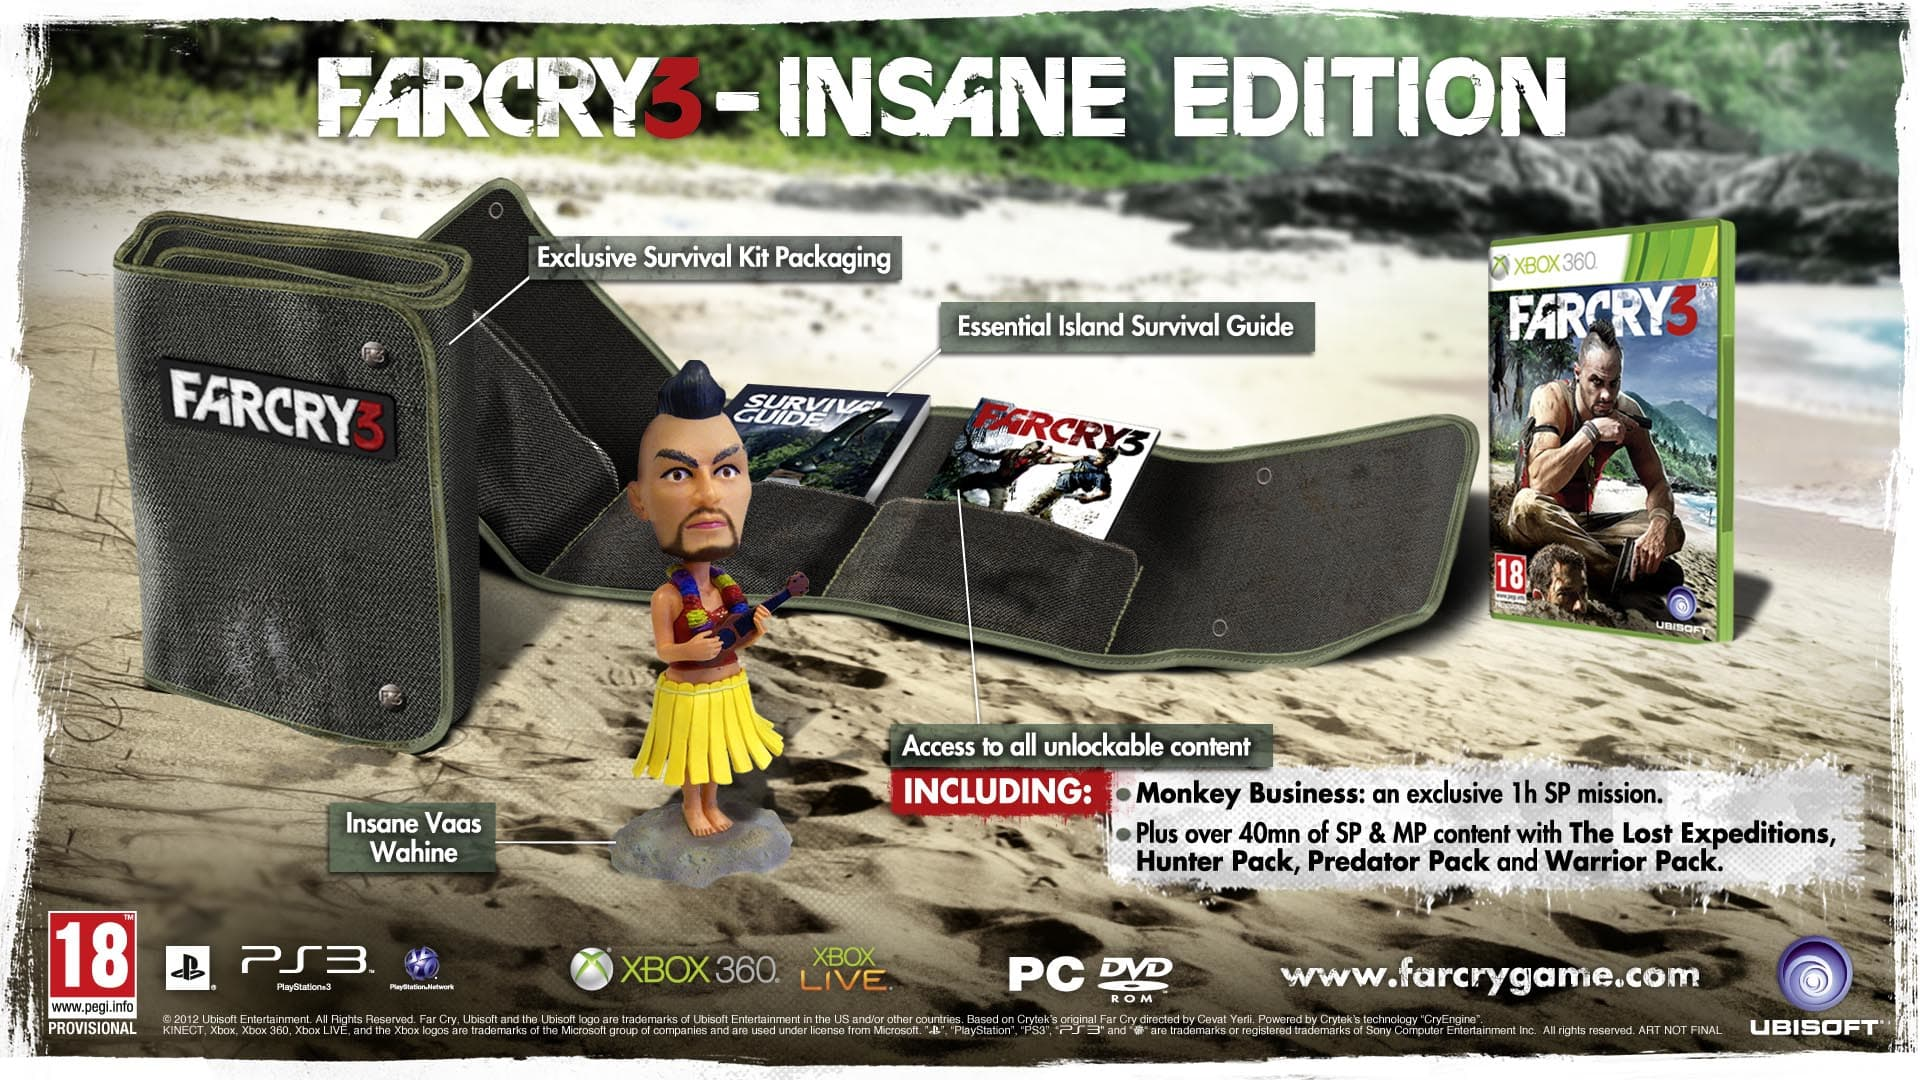 Far Cry 3 Insane Edition on Xbox 360 at GAME